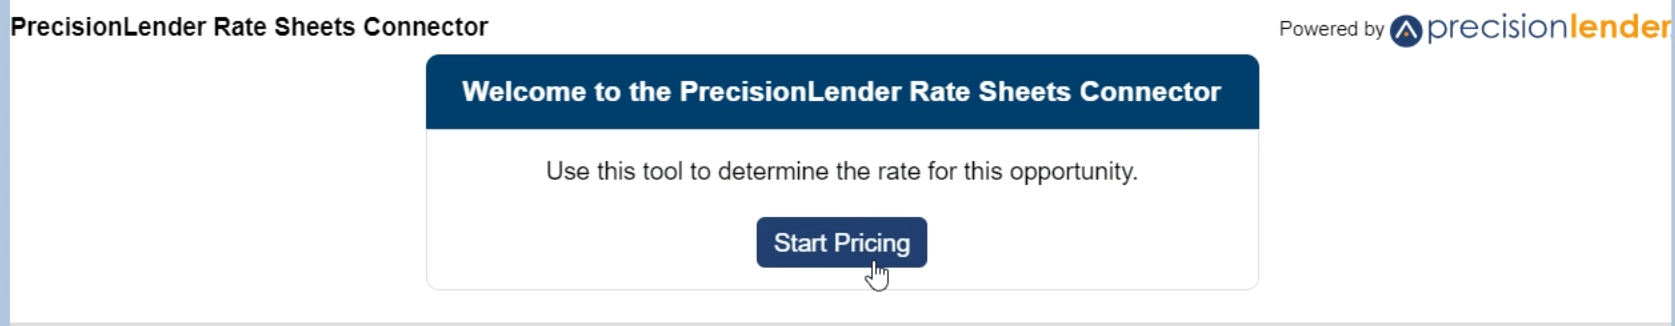 start_pricing_button.png